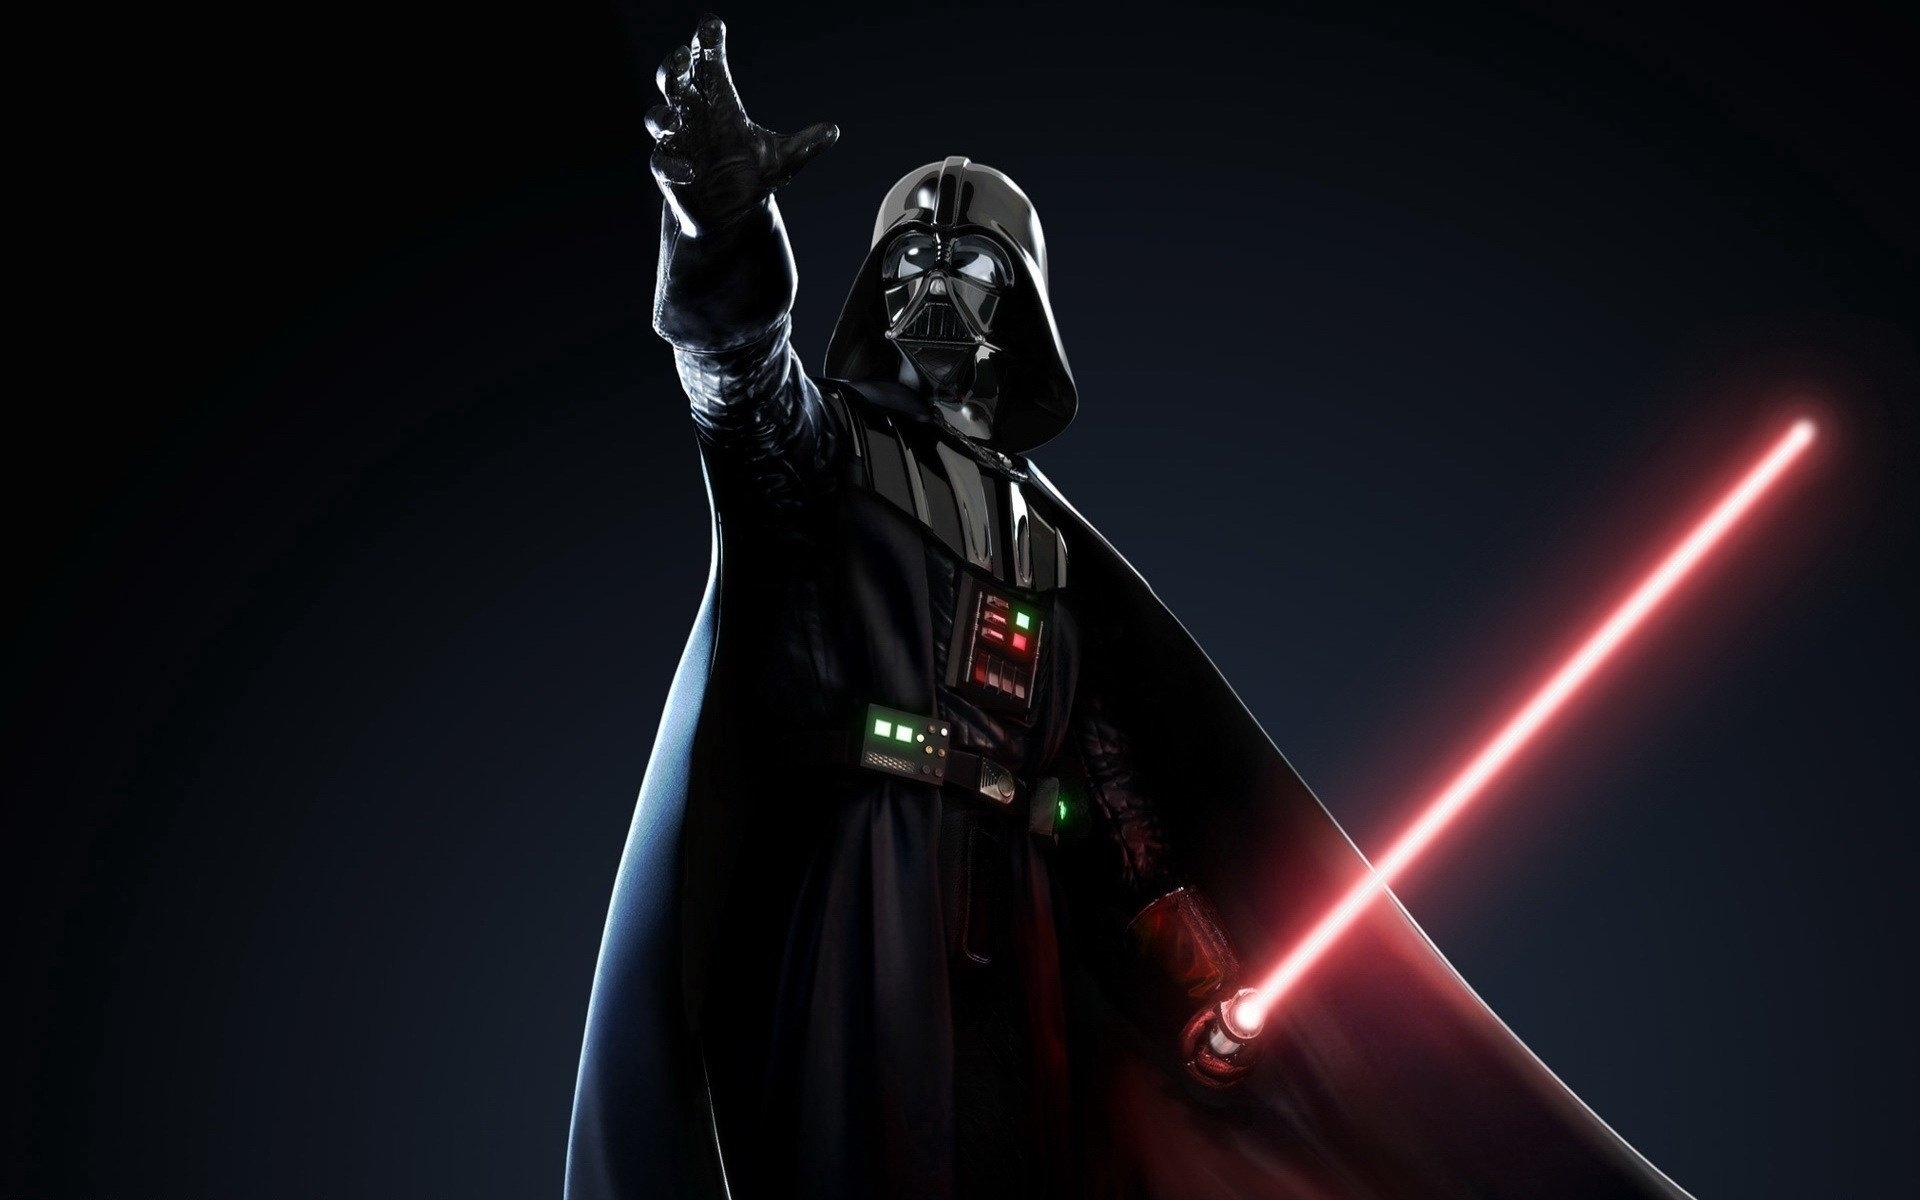 305 darth vader hd wallpapers | background images - wallpaper abyss